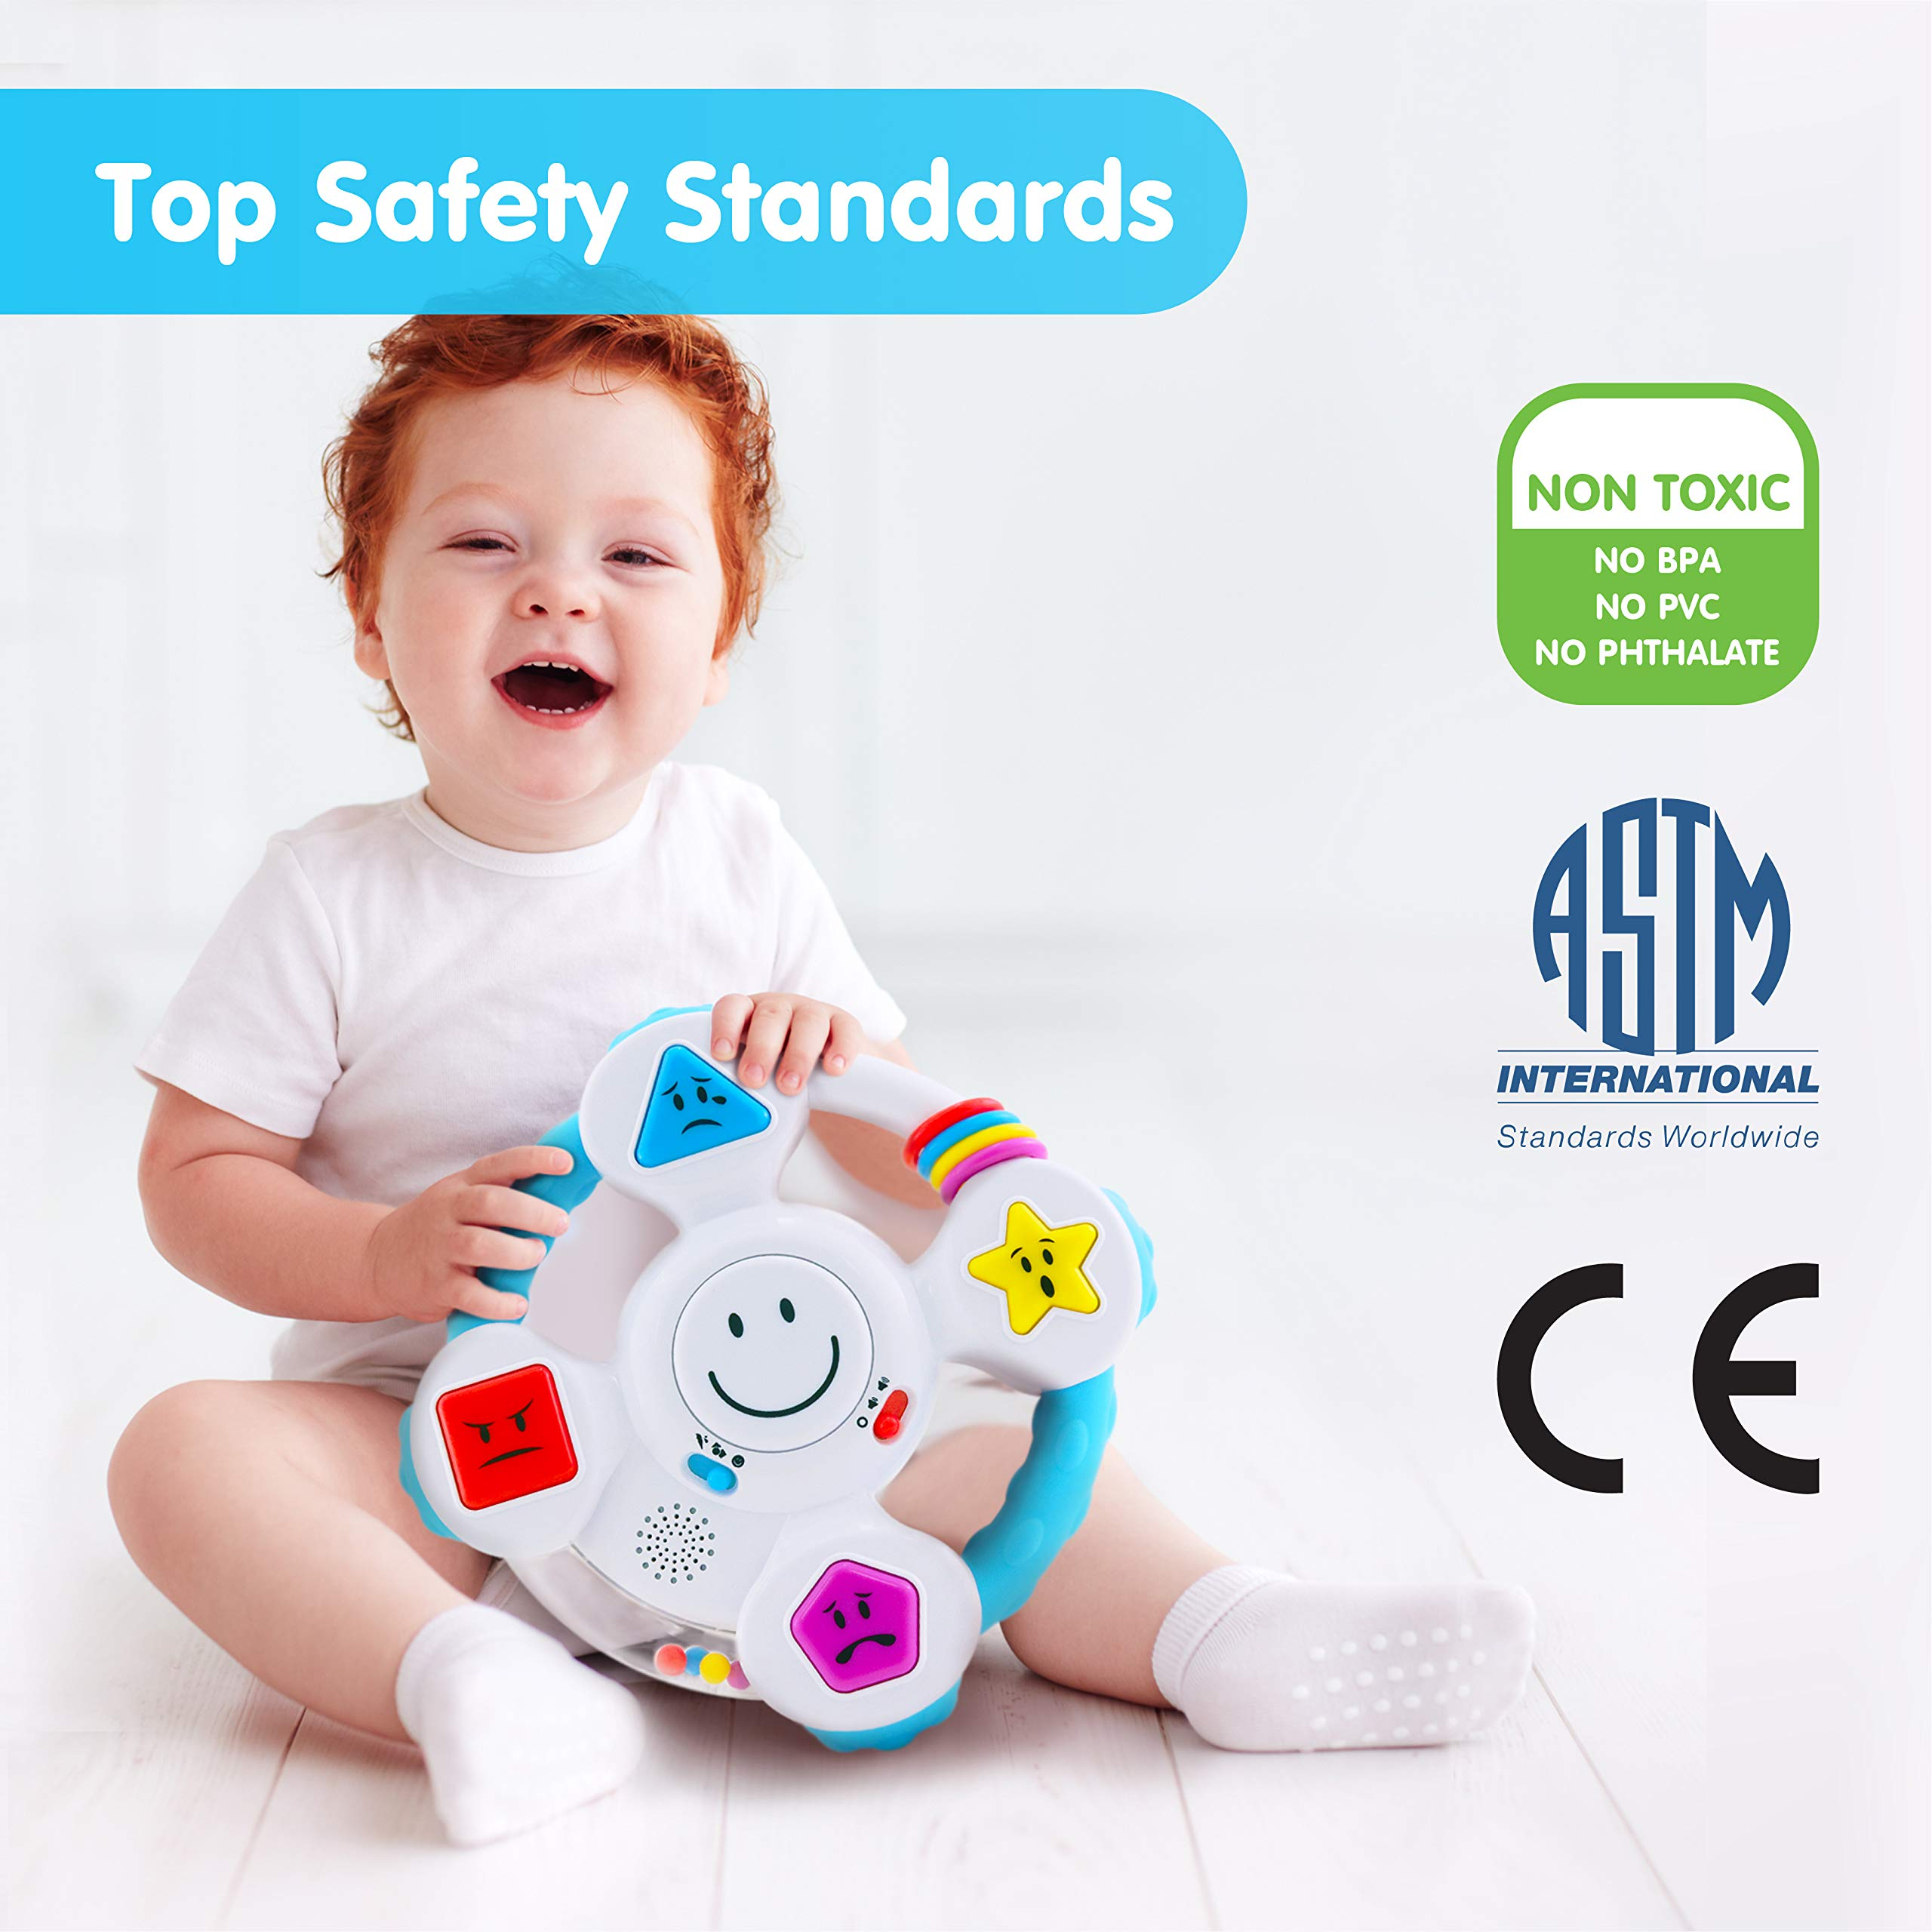 BEST LEARNING My Spin & Learn Steering Wheel - Interactive Educational Light-Up Toddler Toys for 6-36 Months Old Infants & Toddlers - Colors, Shapes, Emotions & Music Game for Babies by BEST LEARNING (Image #2)